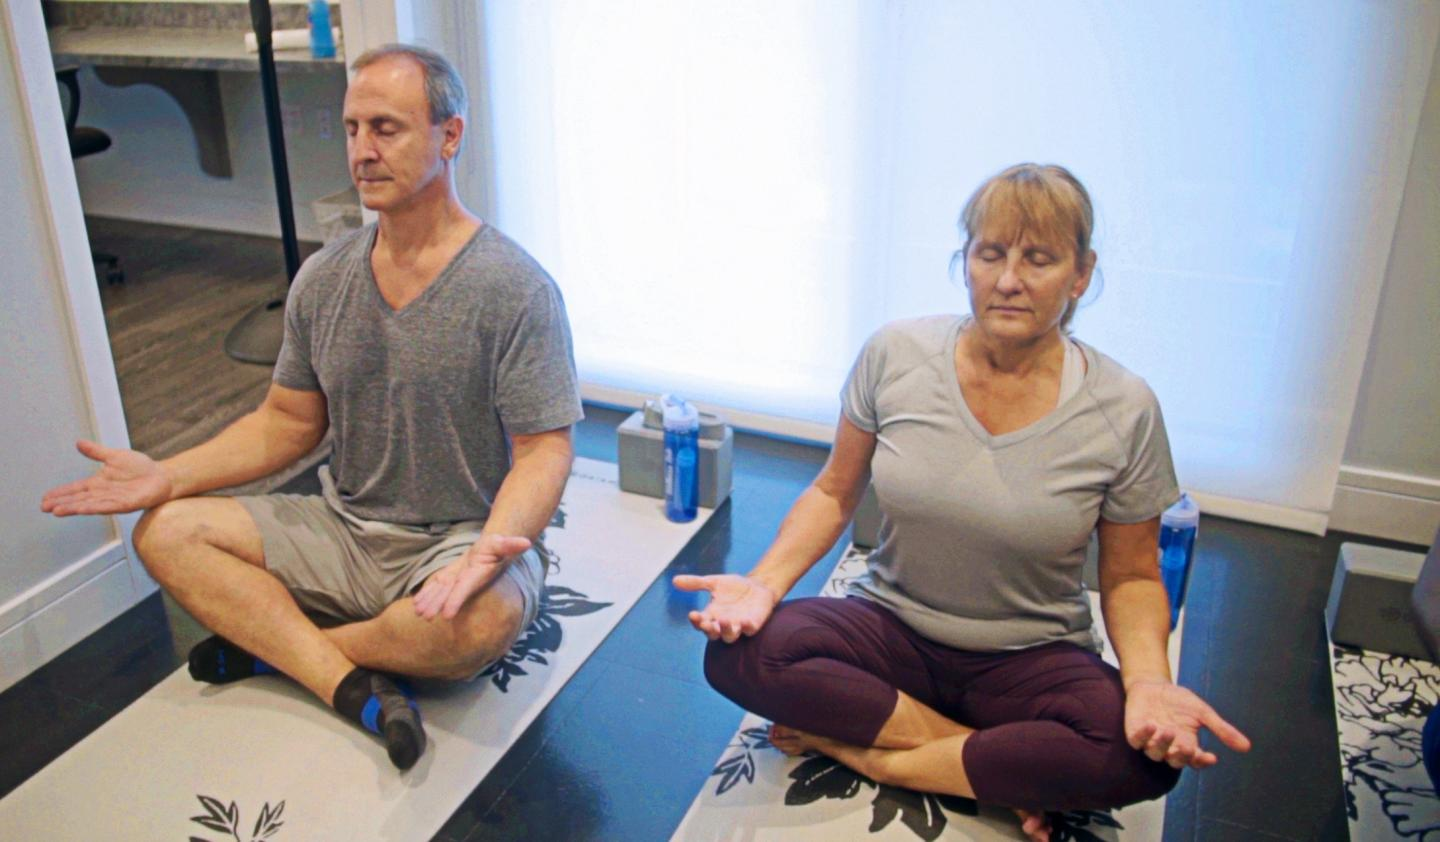 Mindfulness with Paced Breathing and Lowering Blood Pressure